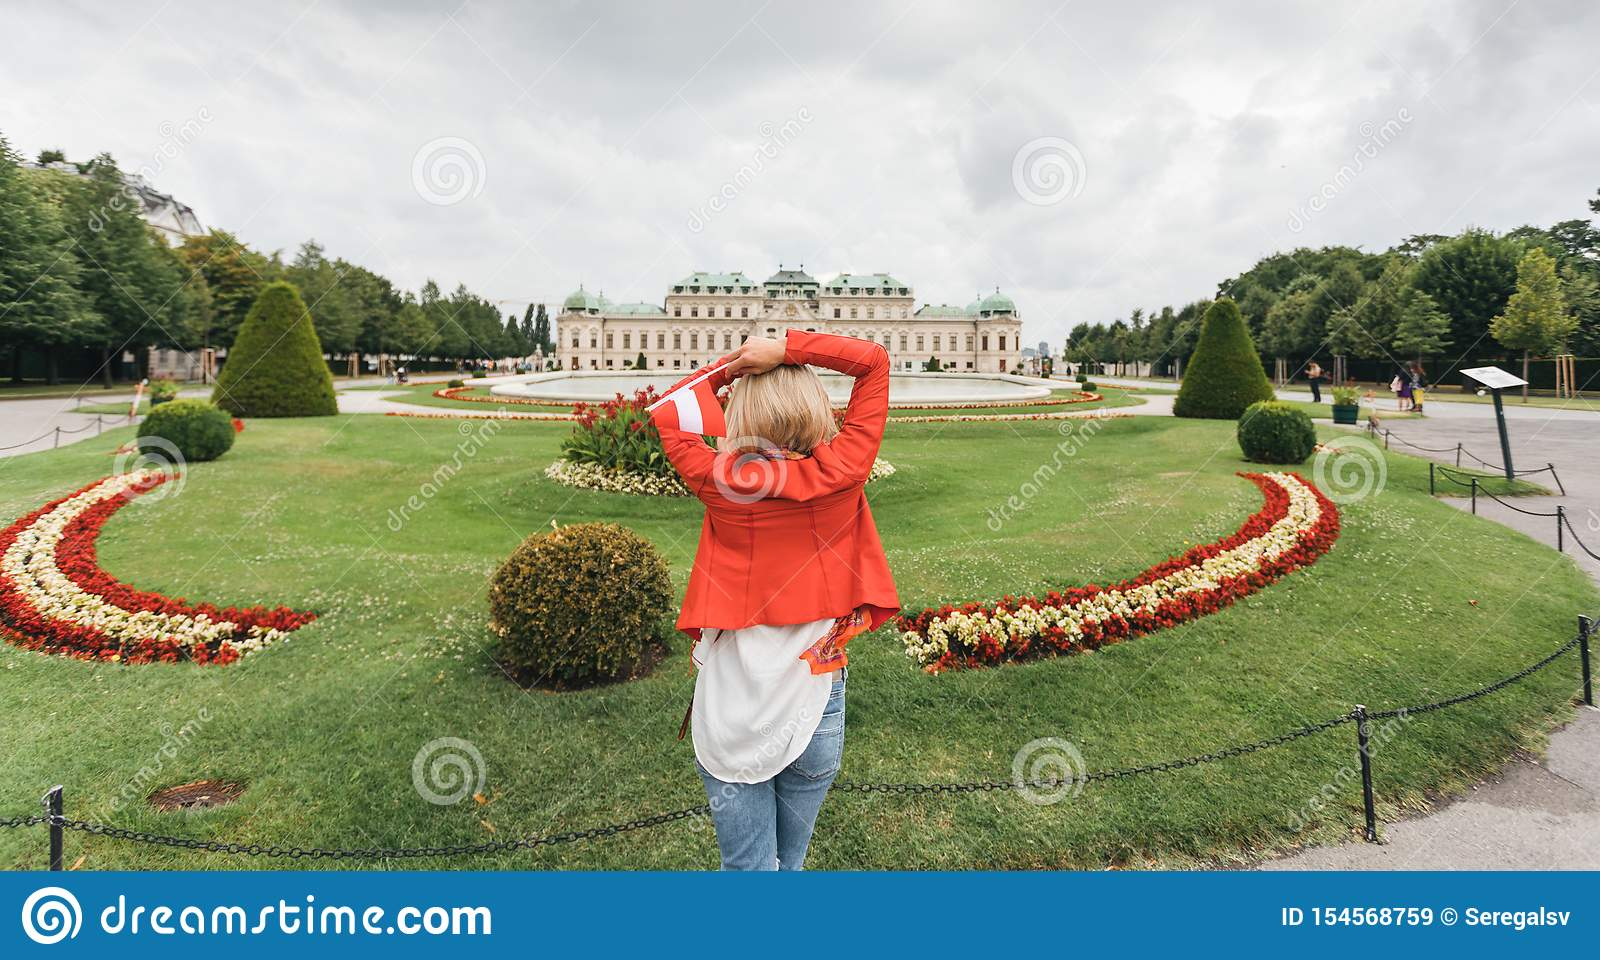 Female traveler on the background of Belvedere Palace complex of the 18th century in Vienna, Austria.